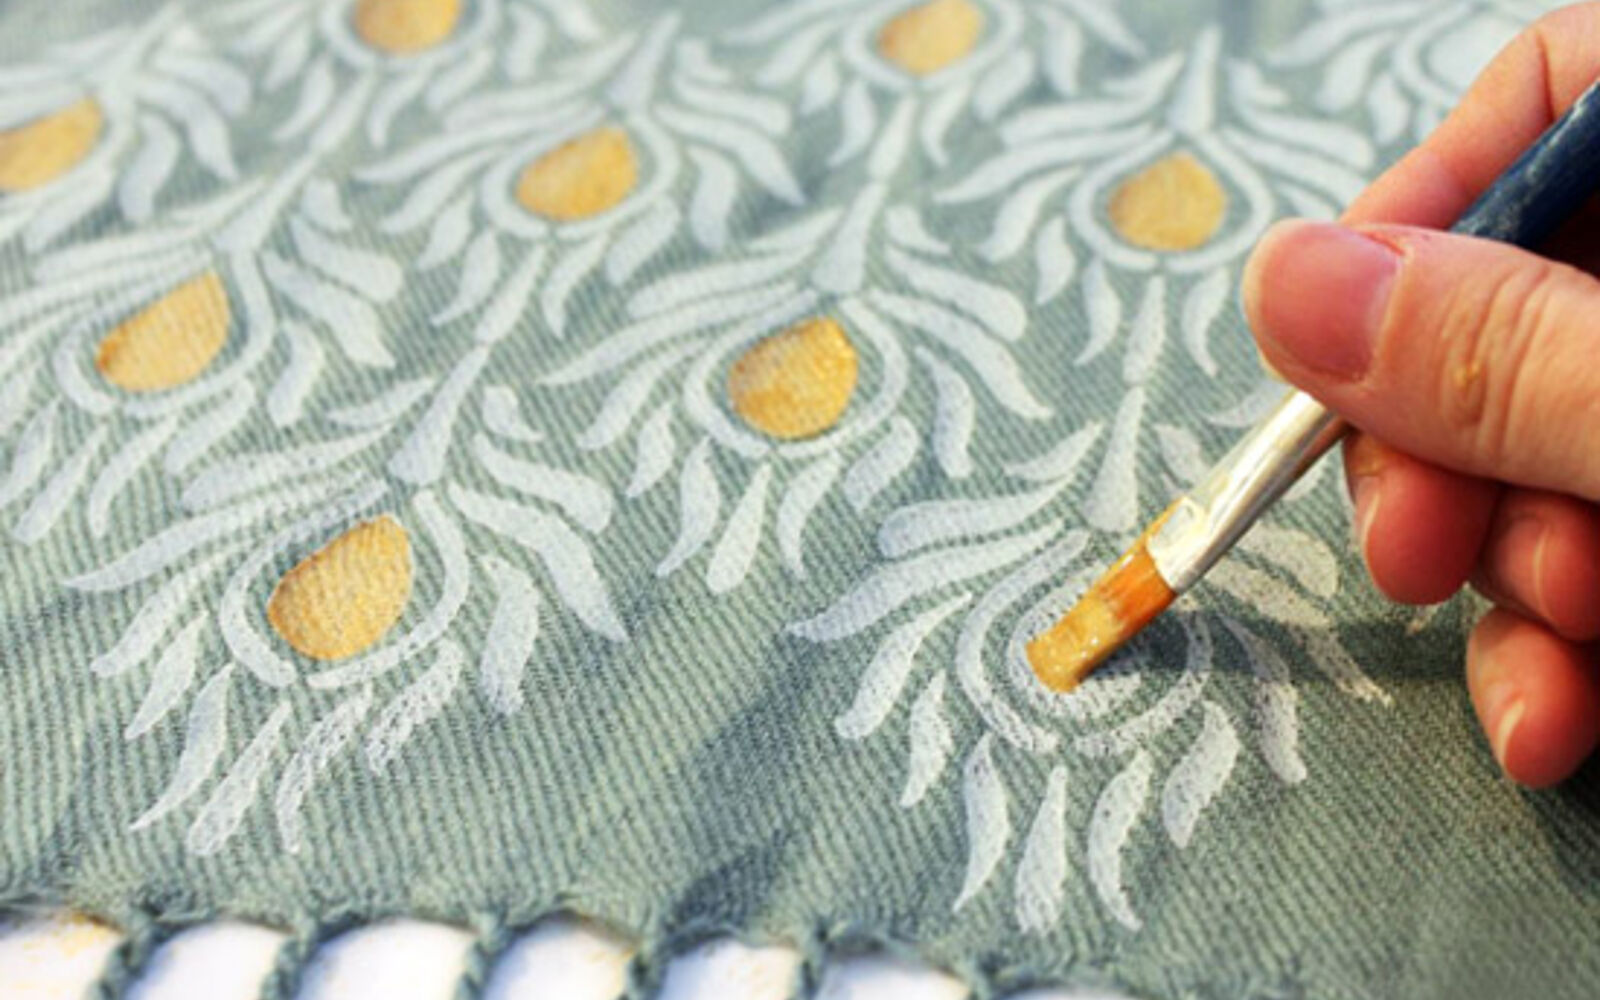 s 14 glamorous ways to upgrade your home using stencils, Make beautiful scarves to give as gifts